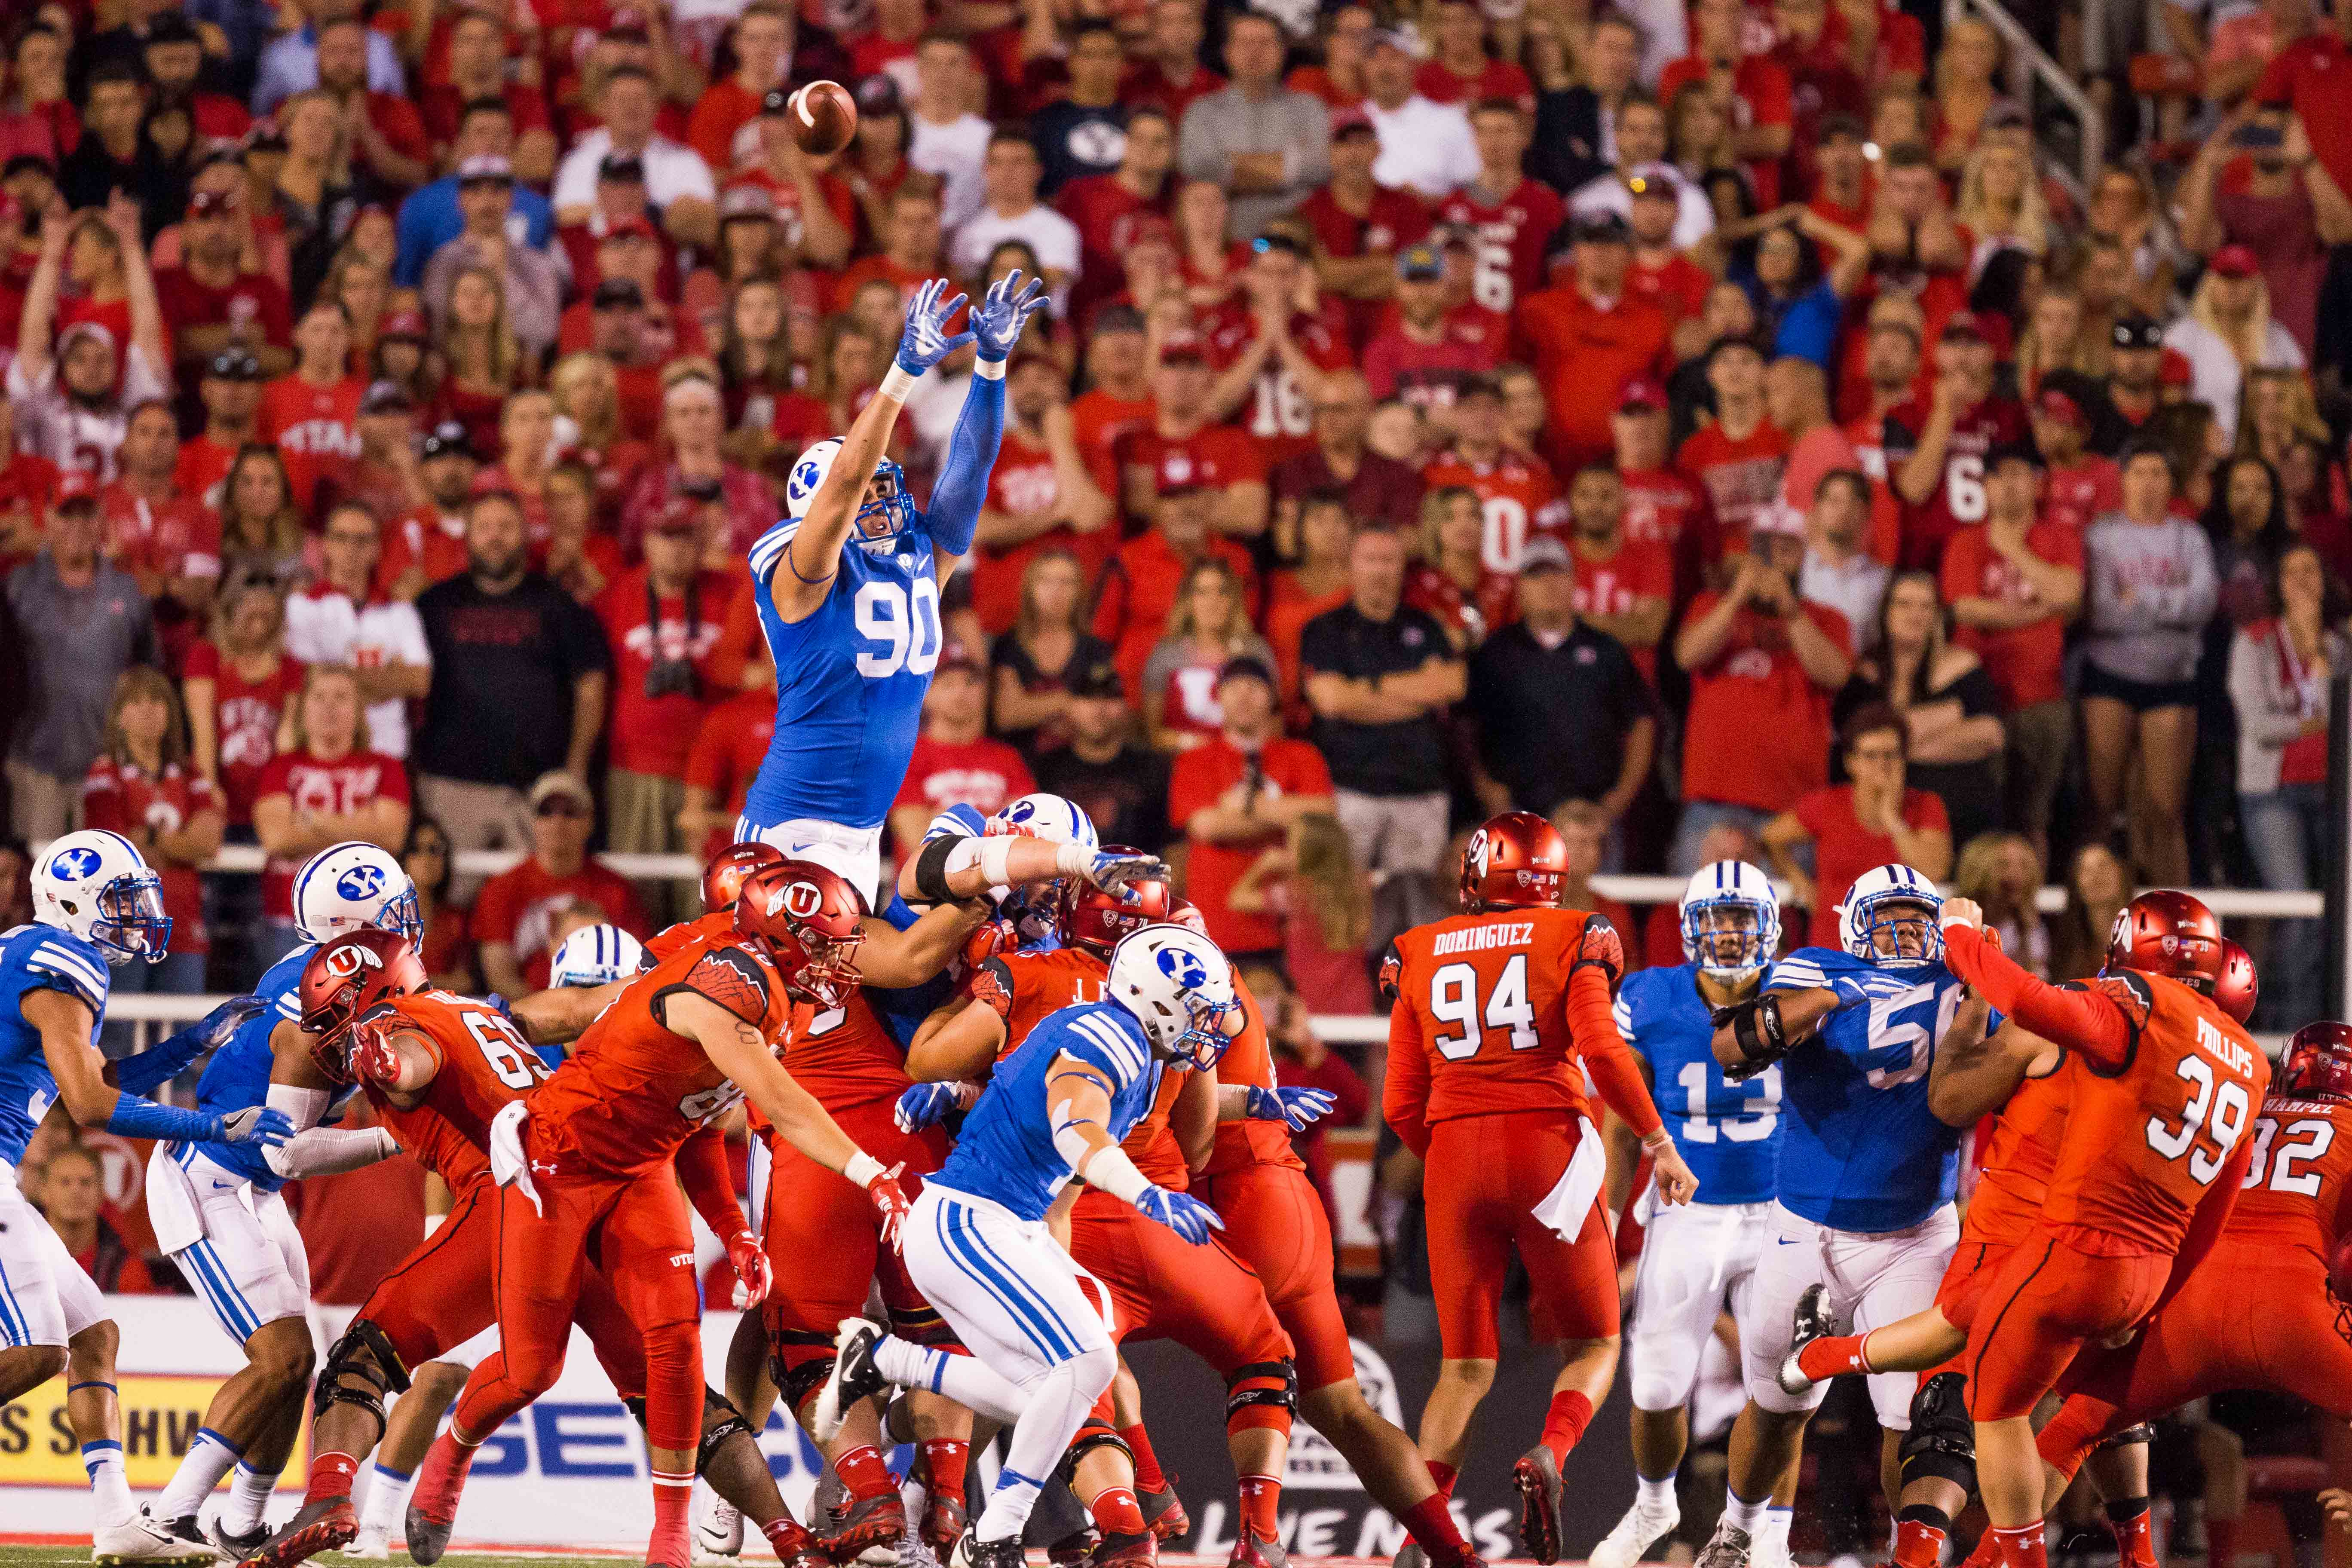 Byu Cougars Football Schedule 2020 BYU football schedules Minnesota, extends Utah   The Daily Universe